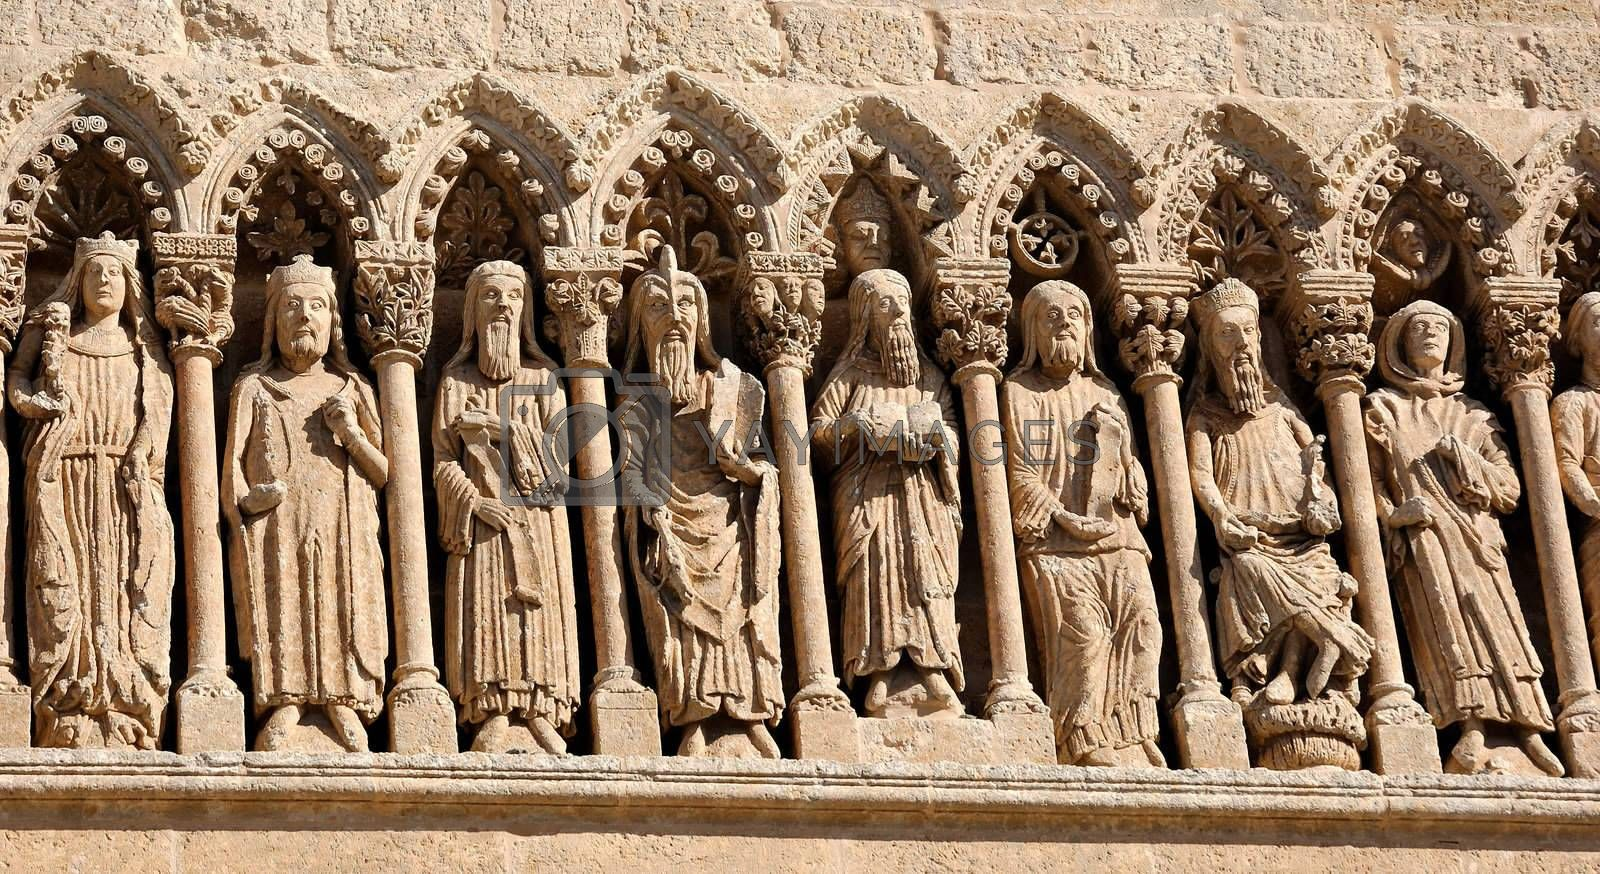 Frieze of the Cathedral of Ciudad Rodrigo (Salamanca) in Spain